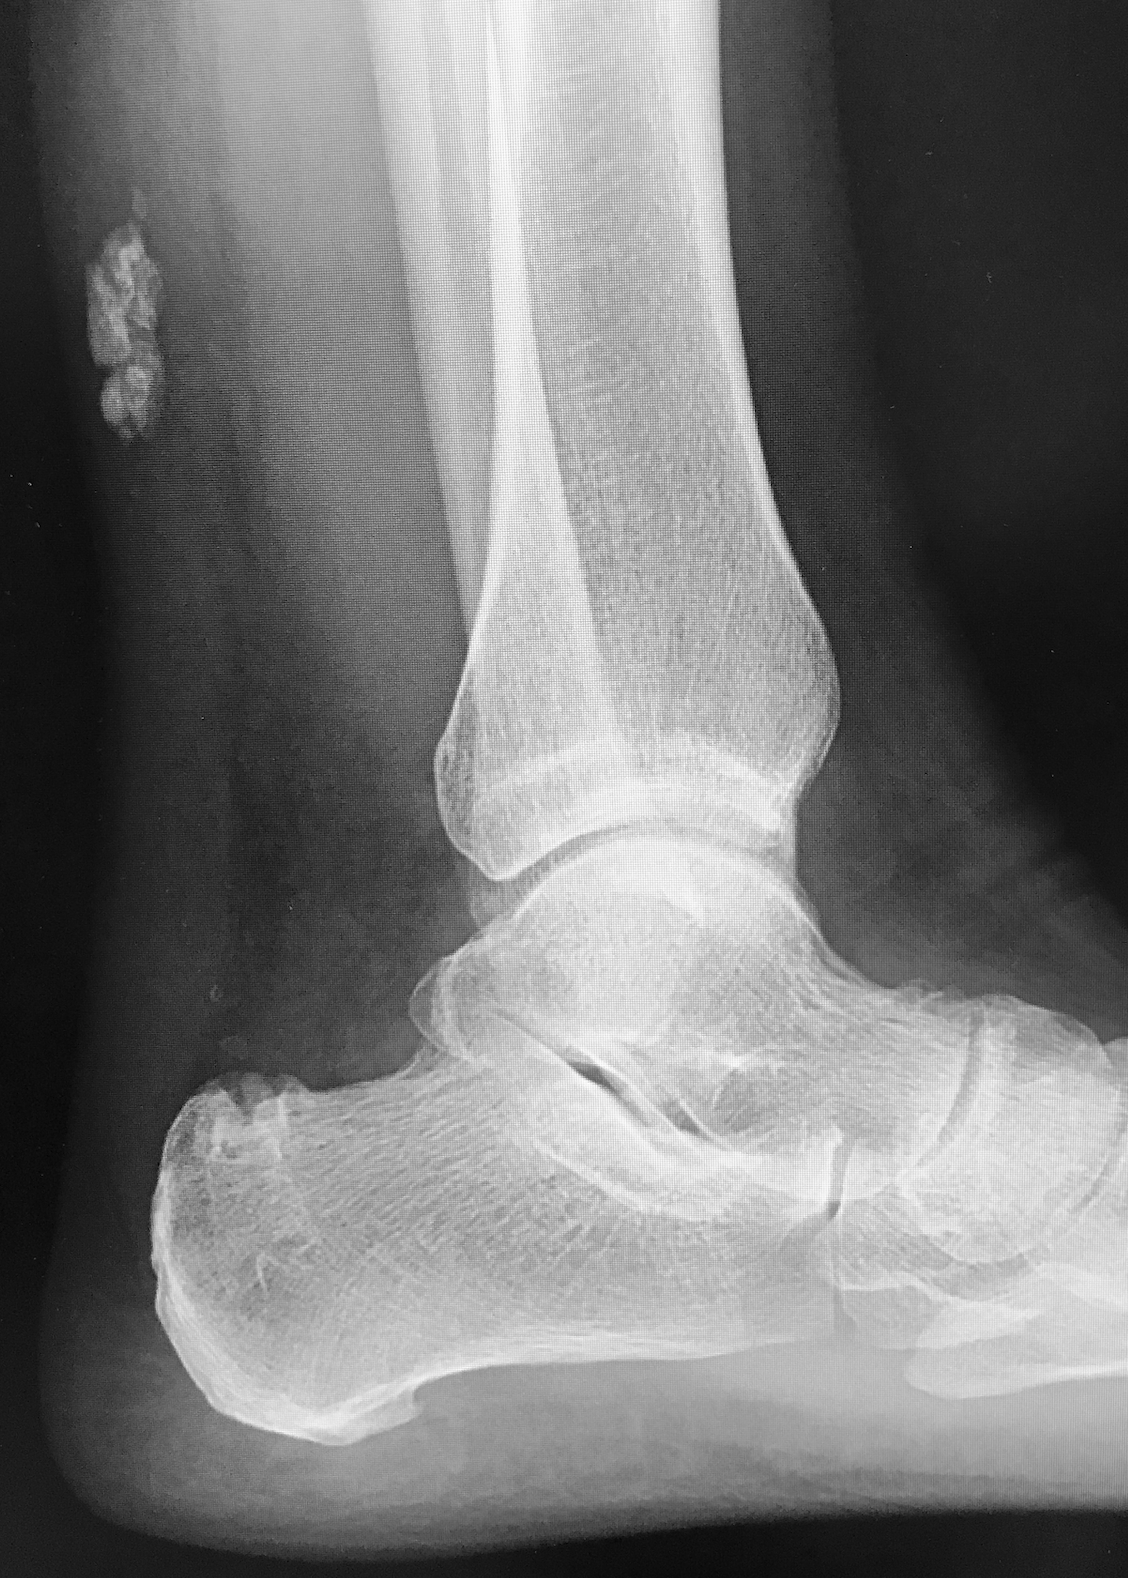 Copy of Xray showing calcification of the Achilles